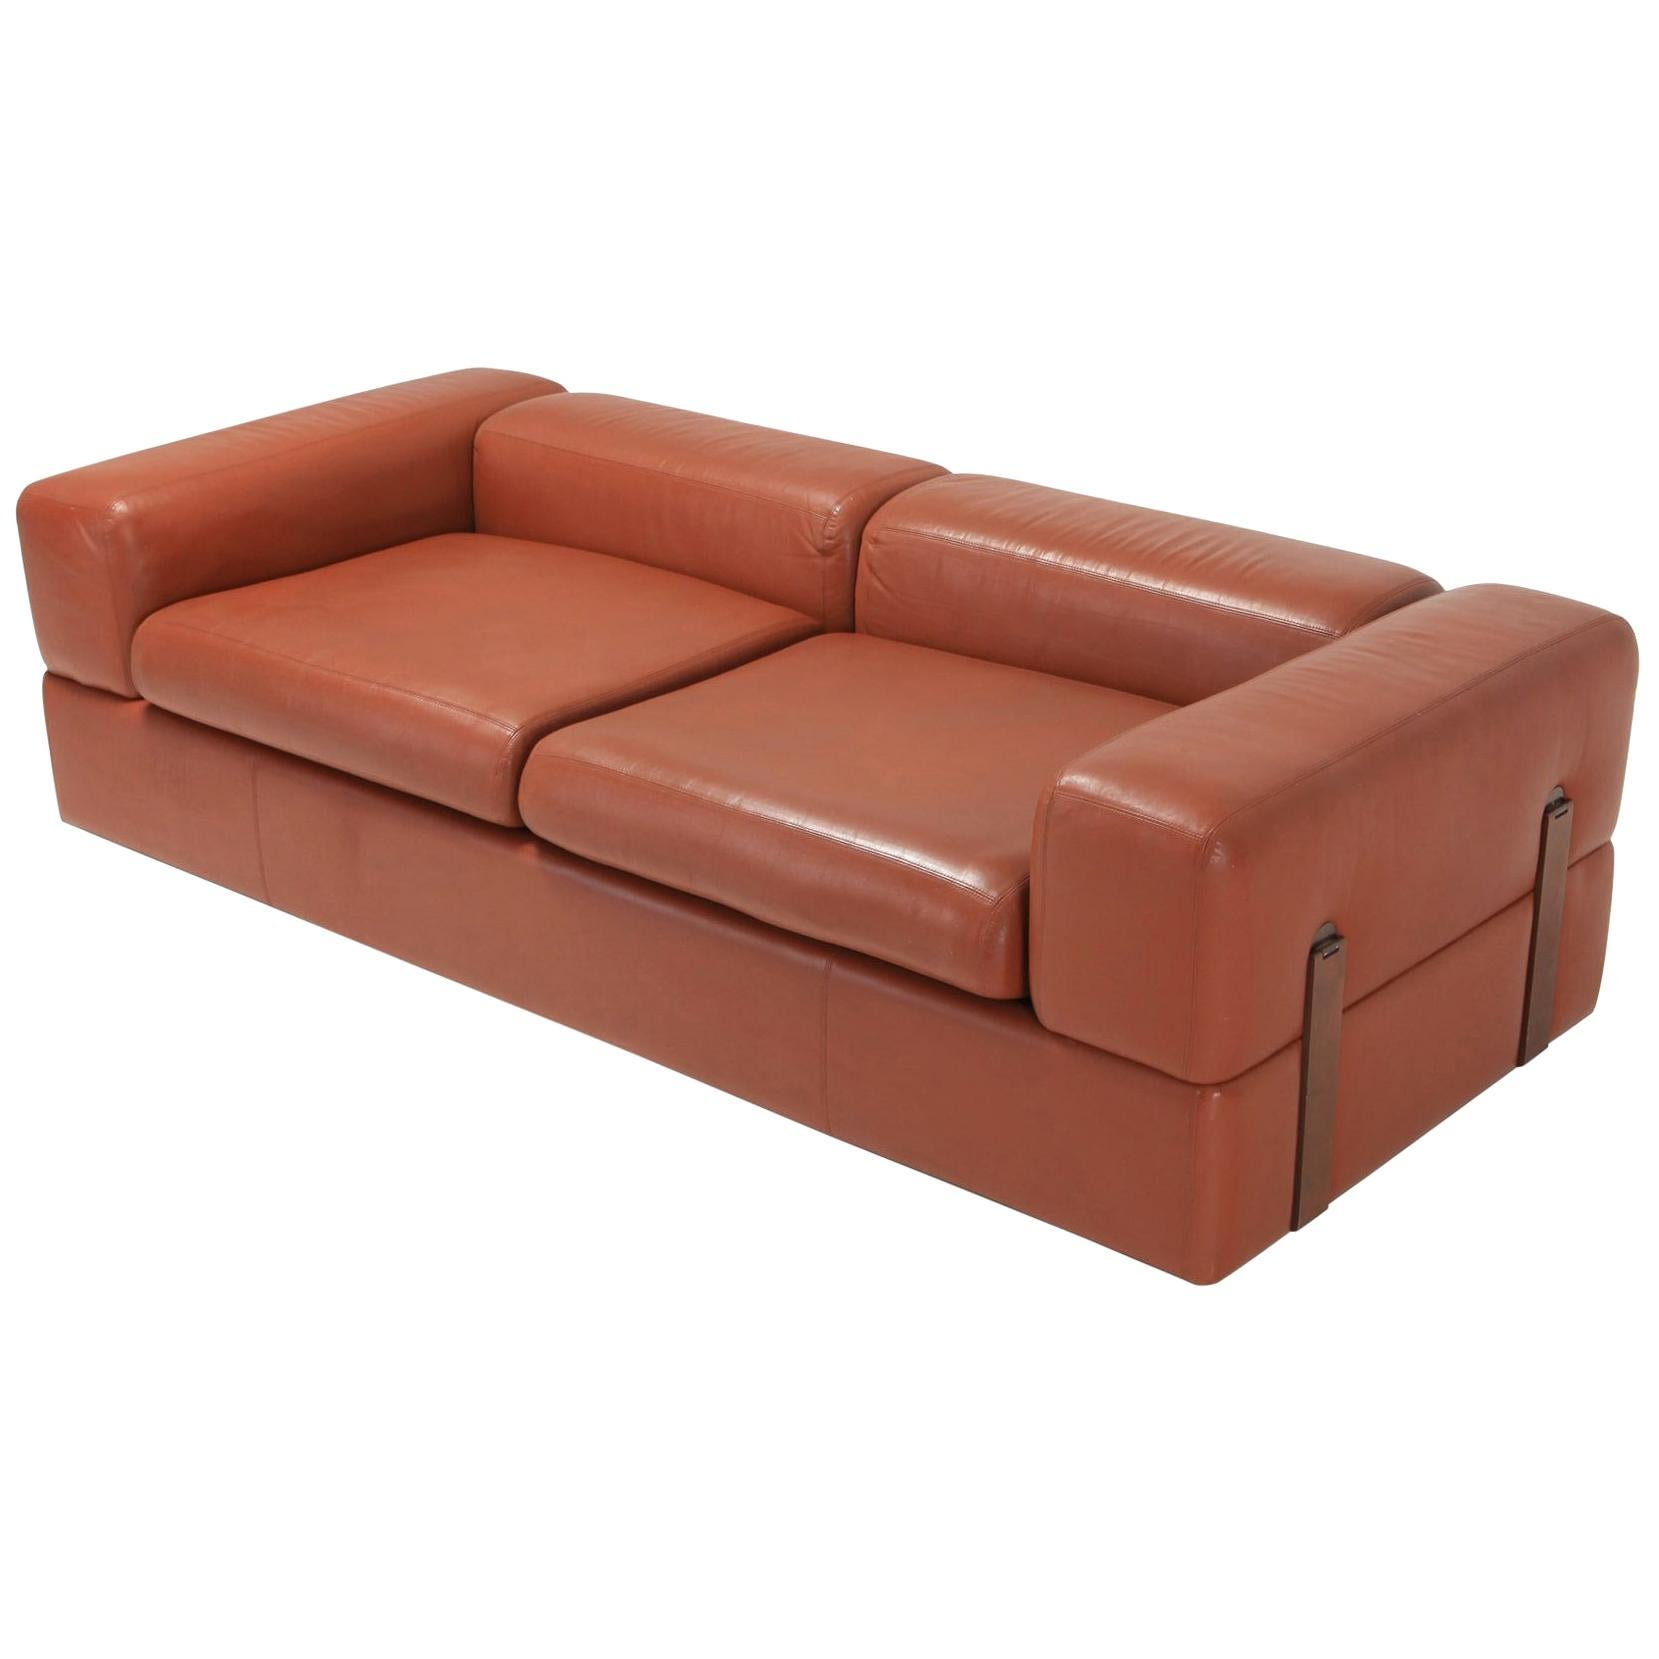 Cognac Leather Sofa by Tito Agnoli for Cinova